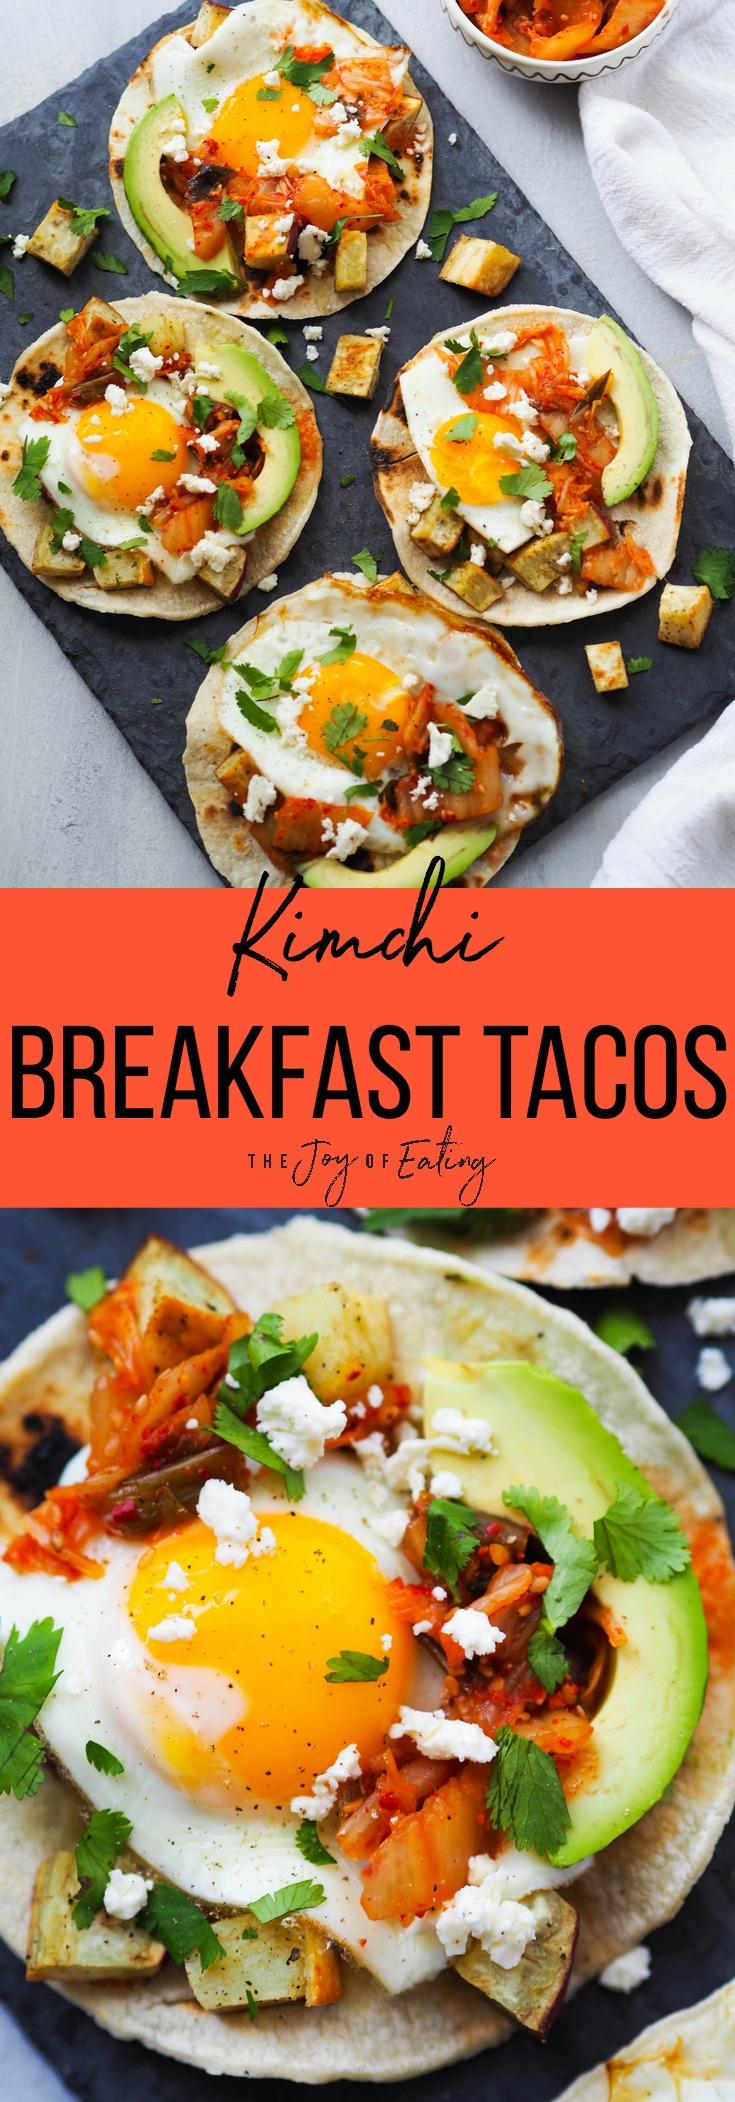 Make these easy kimchi breakfast tacos! They're loaded with avocado, fried egg, roasted Japanese sweet potatoes and spicy kimchi! #taco #breakfast #glutenfree #vegetarian #breakfasttaco #healthyrecipe #fermentedfood